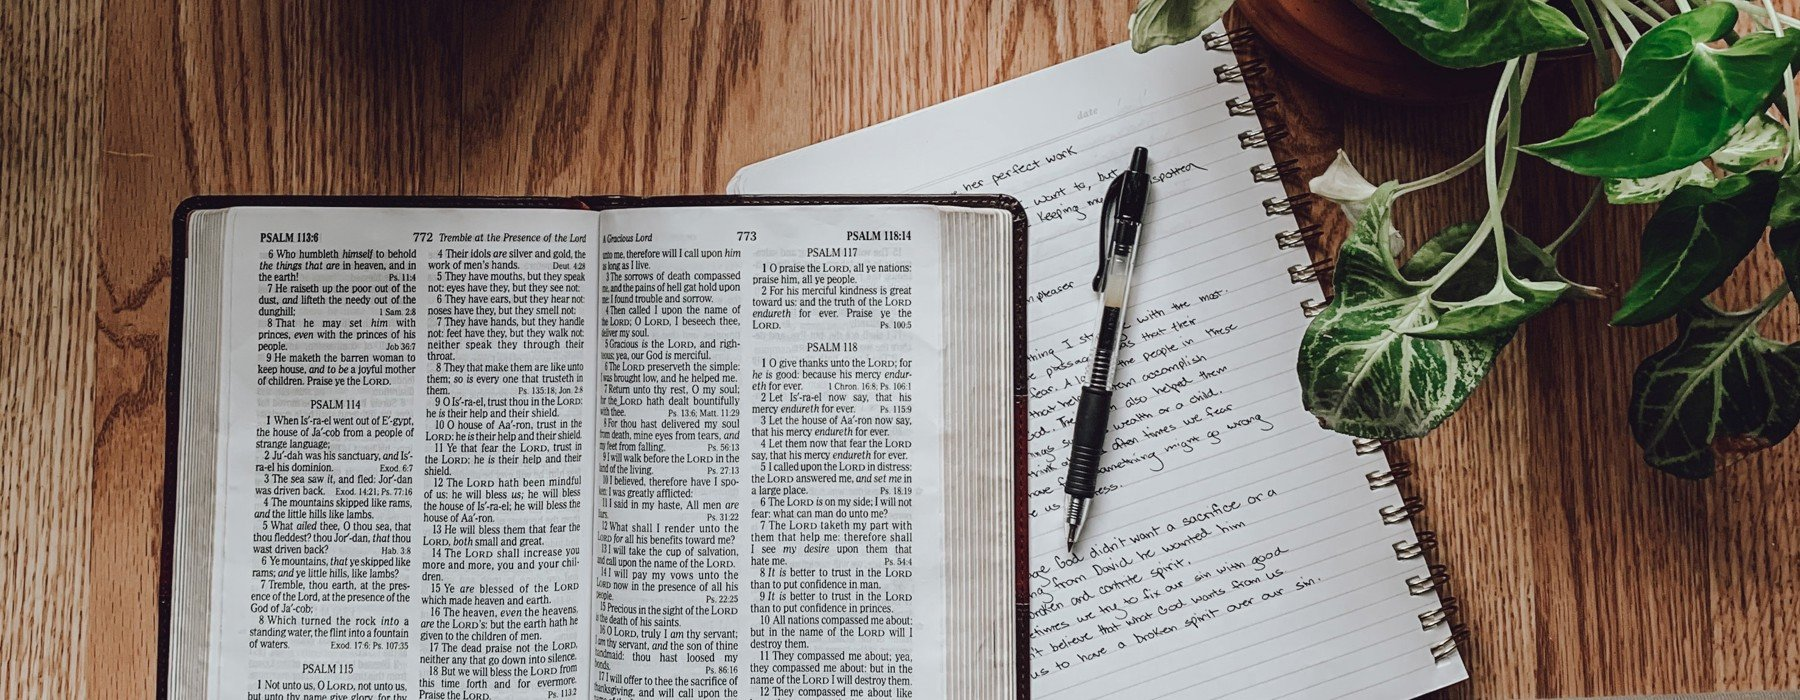 Bible reading notes for older people, what a great idea!